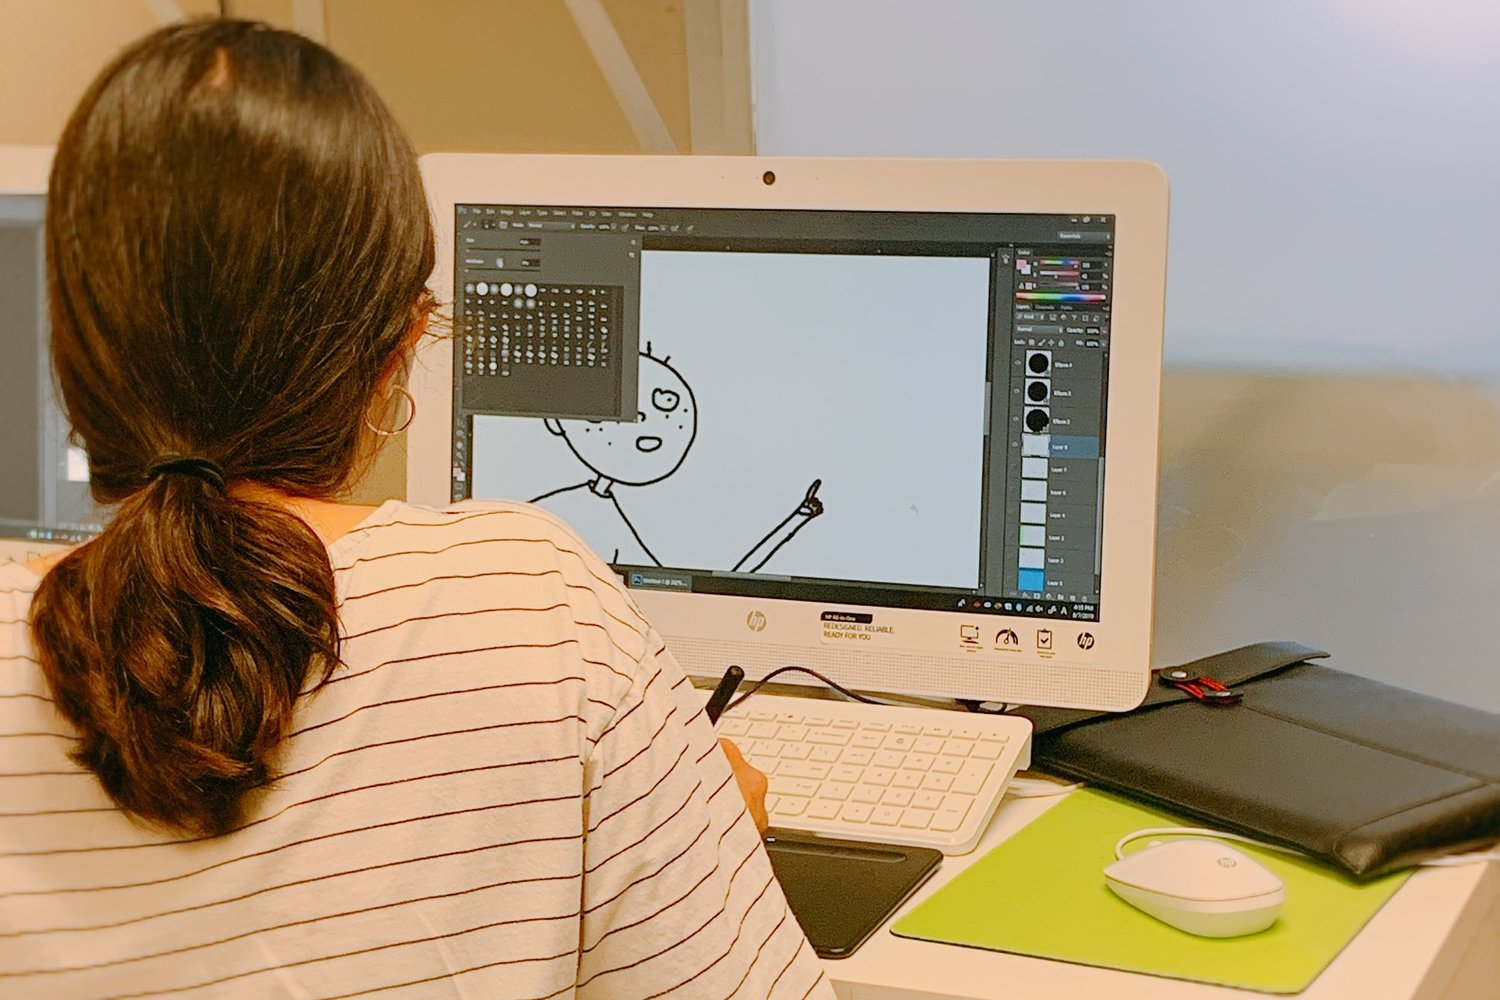 DIGITAL ART CLASS - Students will learn how to utilize digital tools in order to paint and draw on a computer. The class focus will be on familiarizing students with these tools and the methods of producing images using Photoshop.